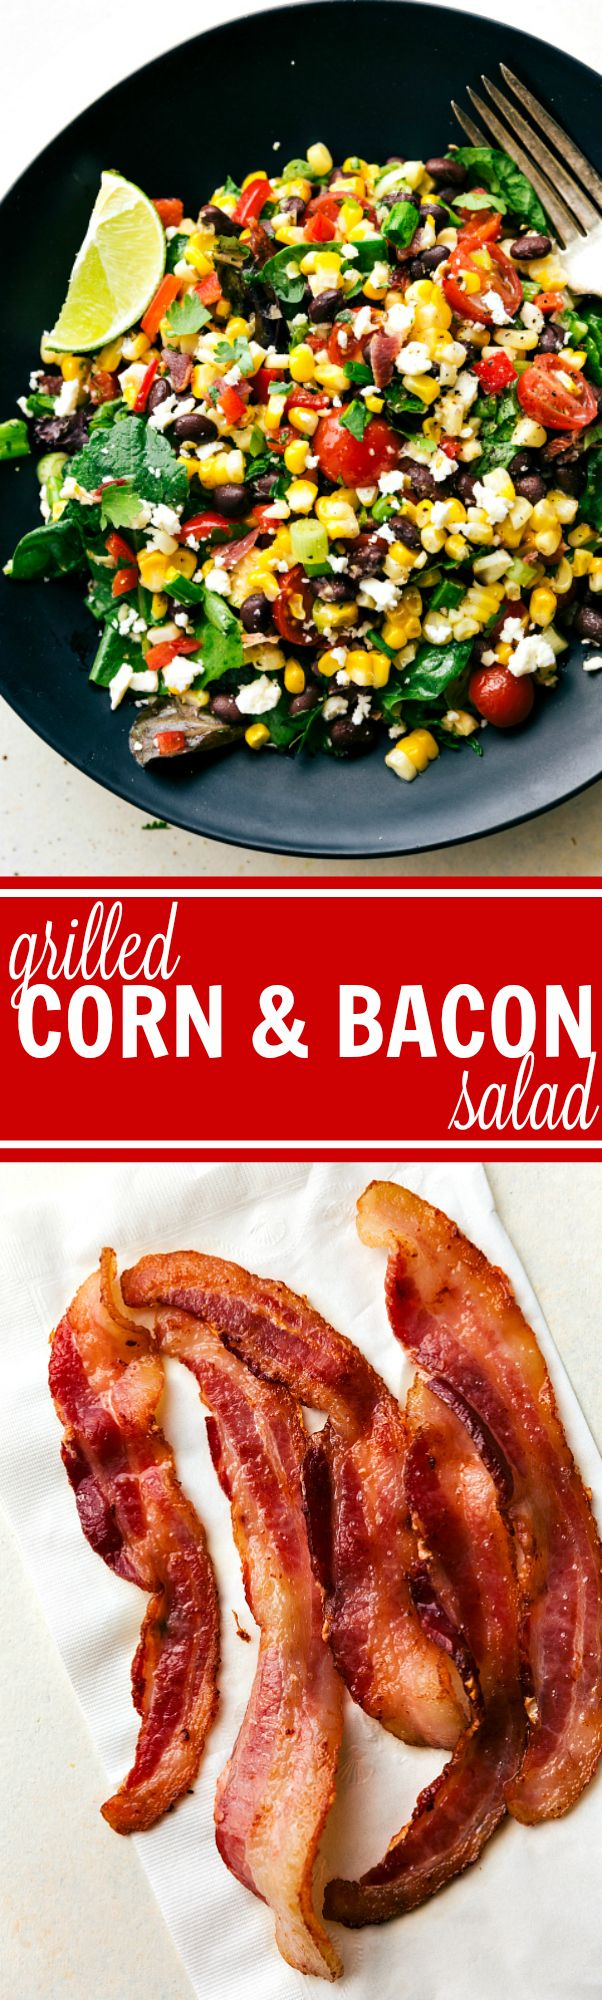 A simple grilled bacon and corn salad with lots of veggies, herbs, and feta…